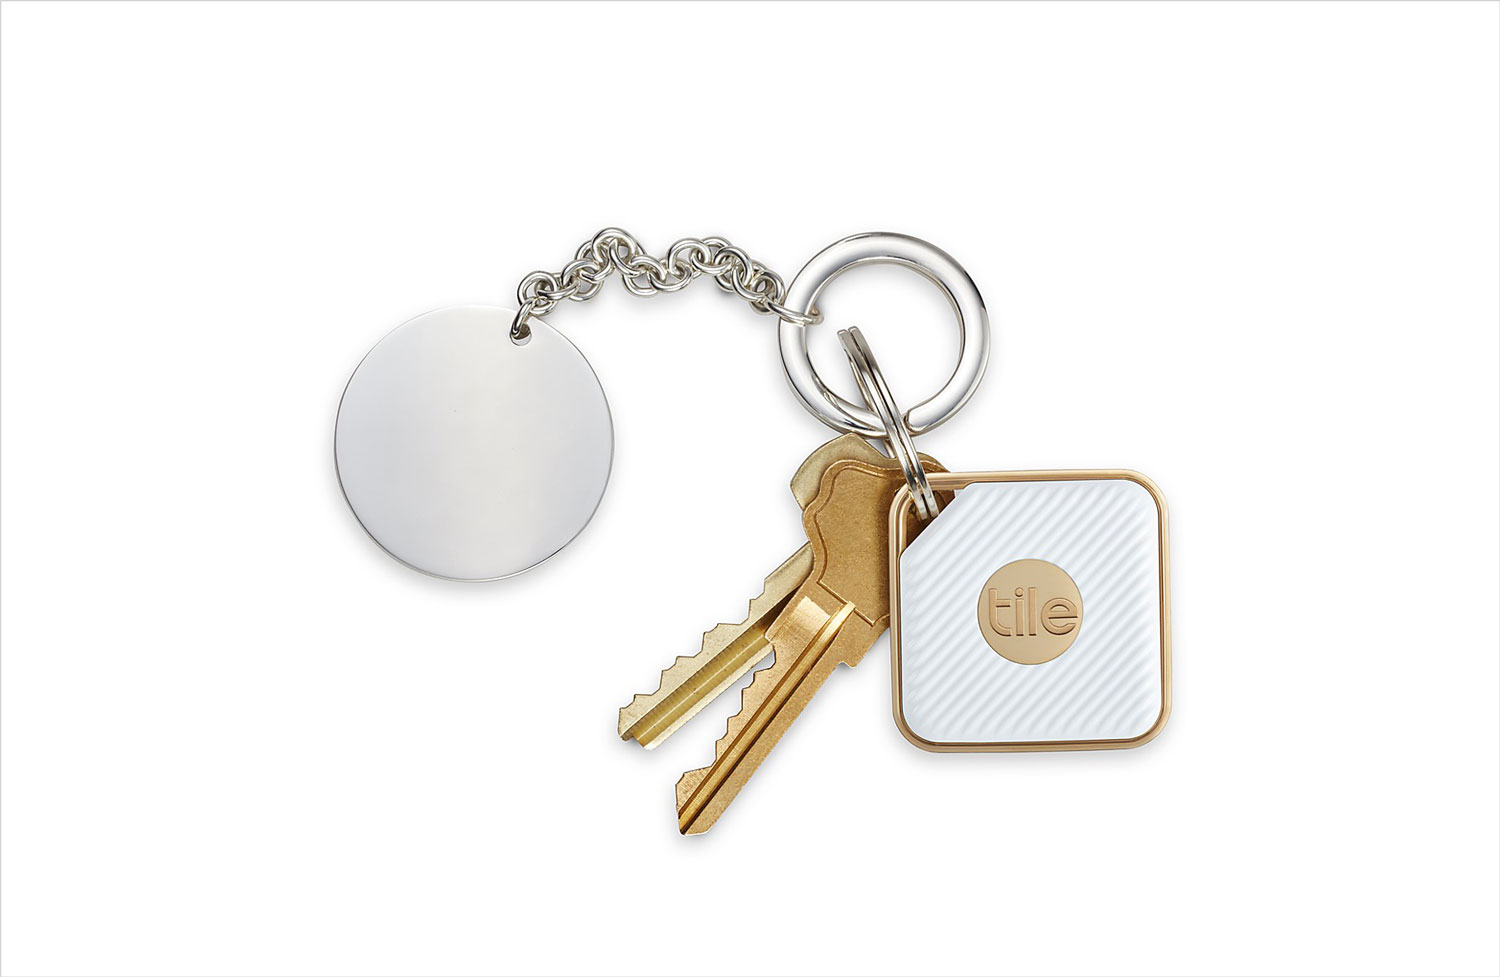 Tile key finder gift guide holiday presents